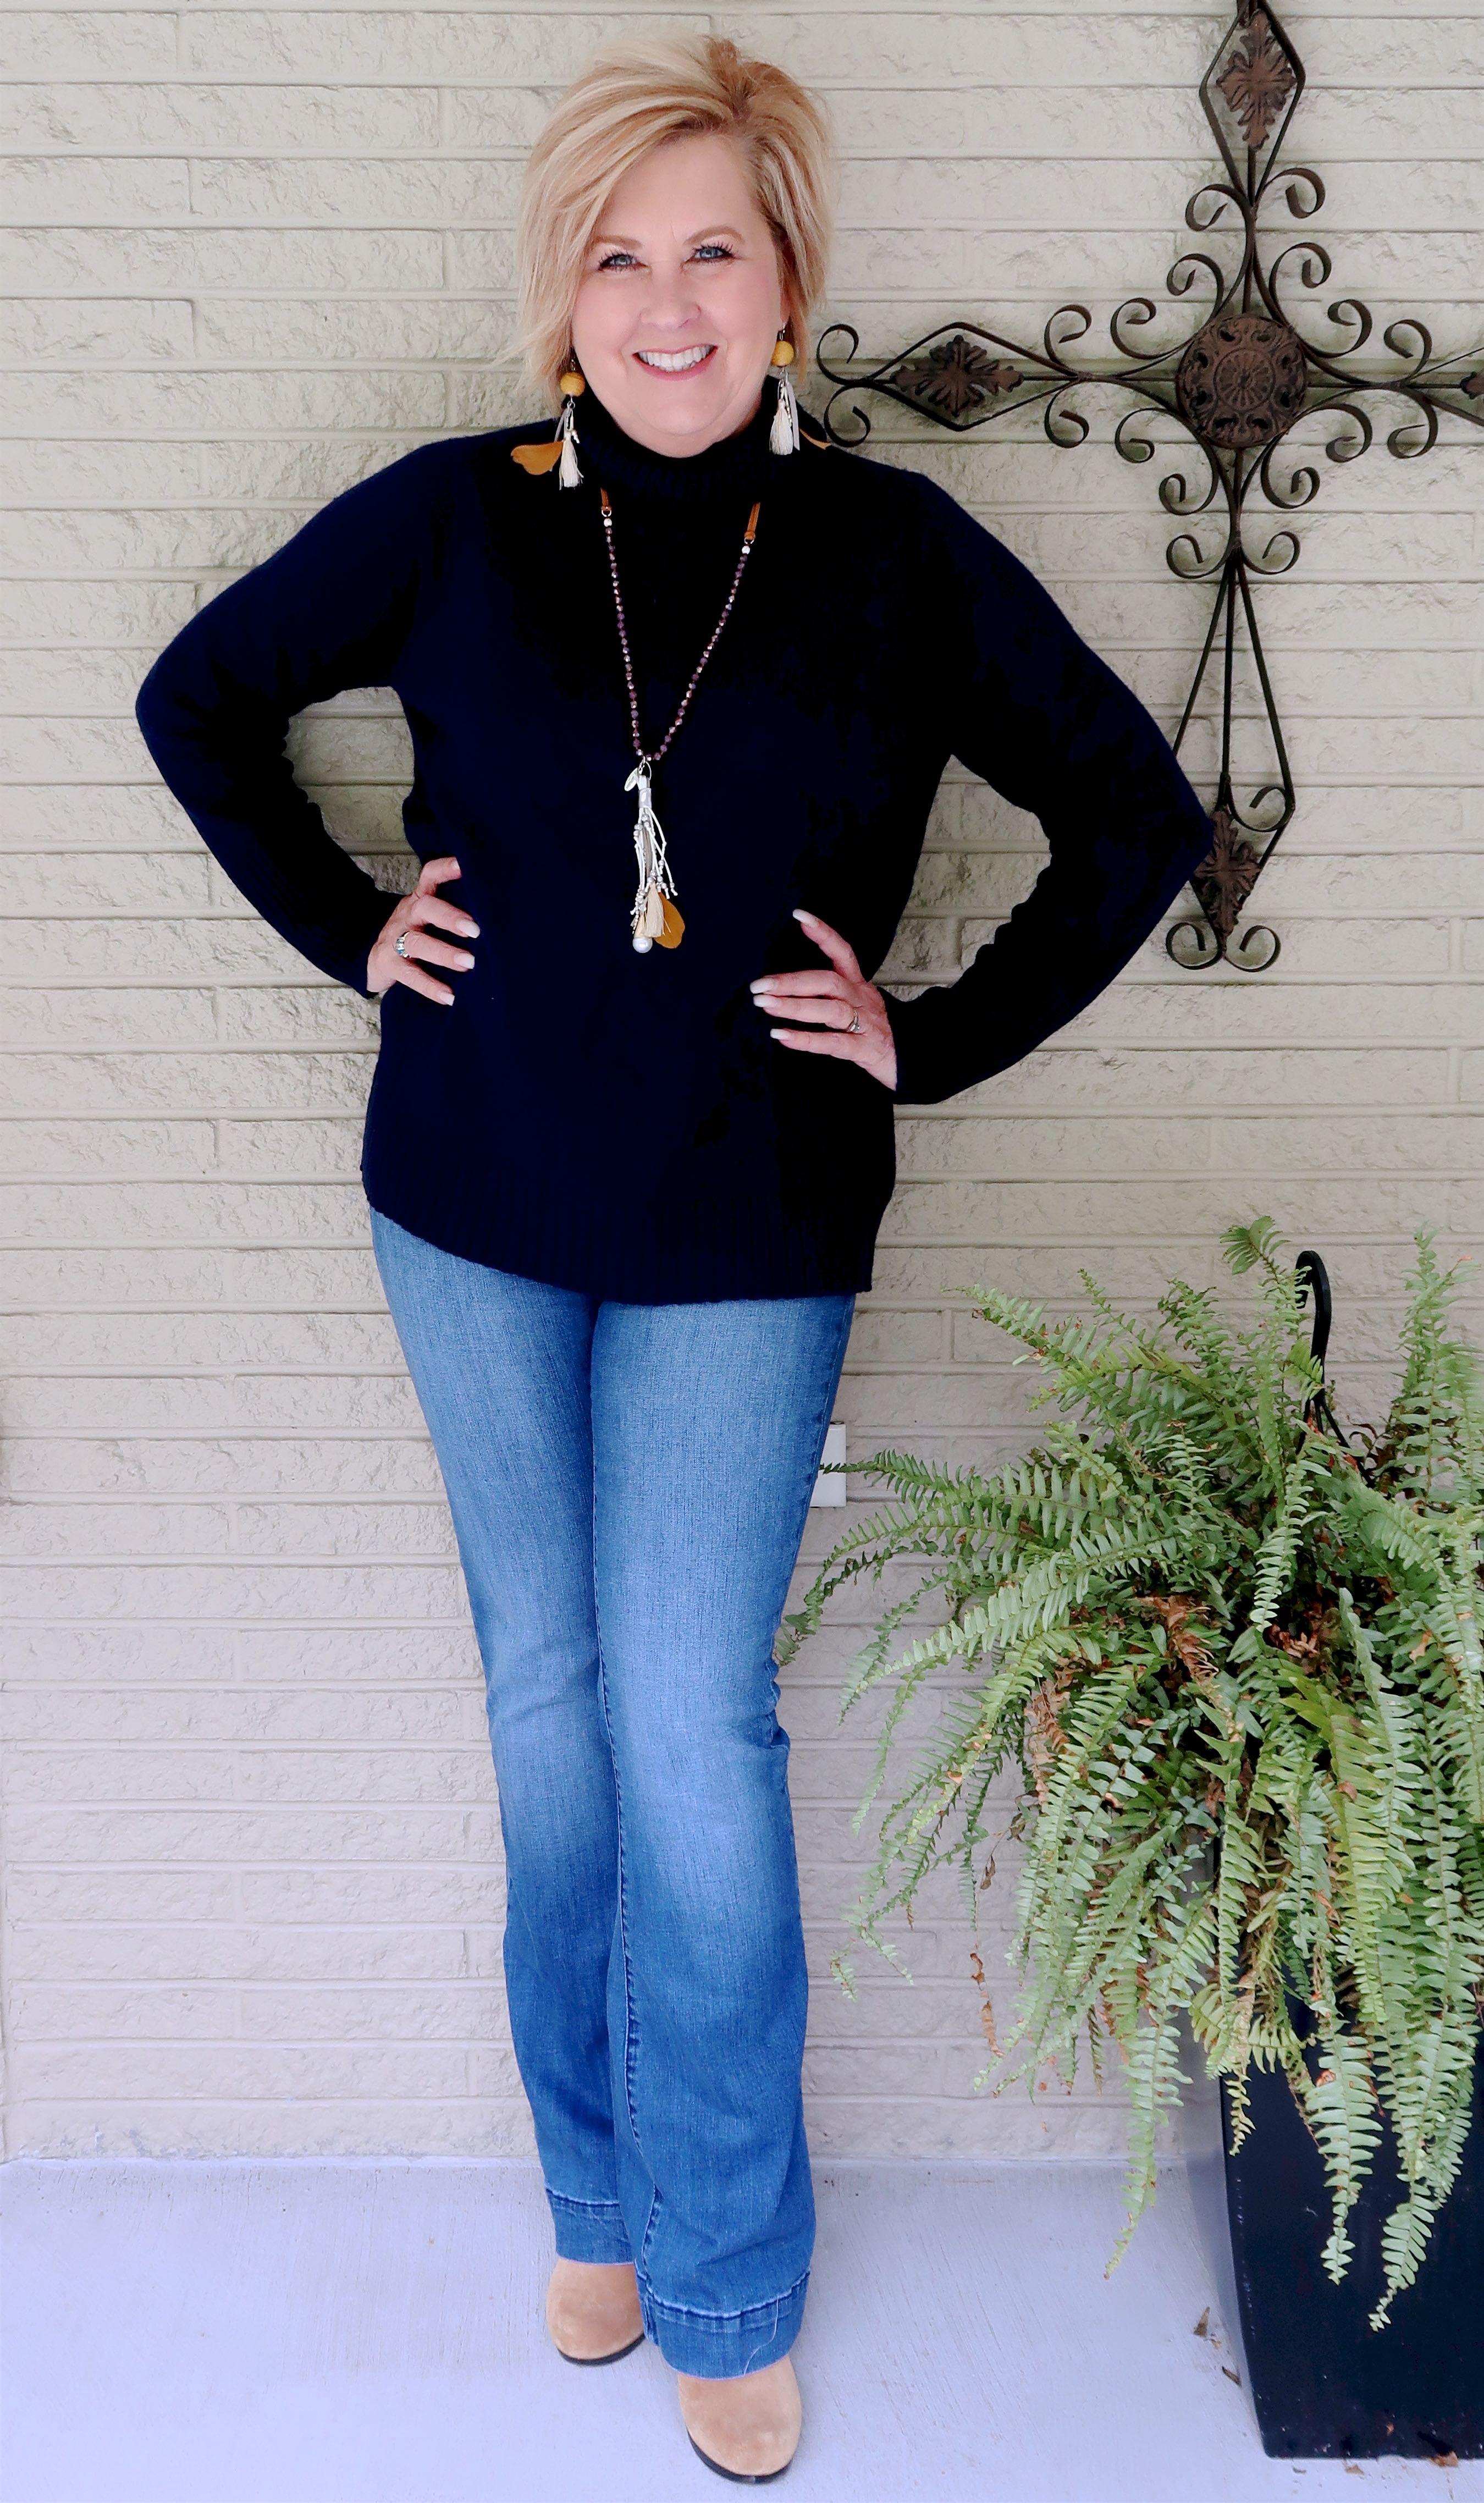 Fashion Blogger 50 Is Not Old in a navy turtleneck sweater, flare jeans, and boots